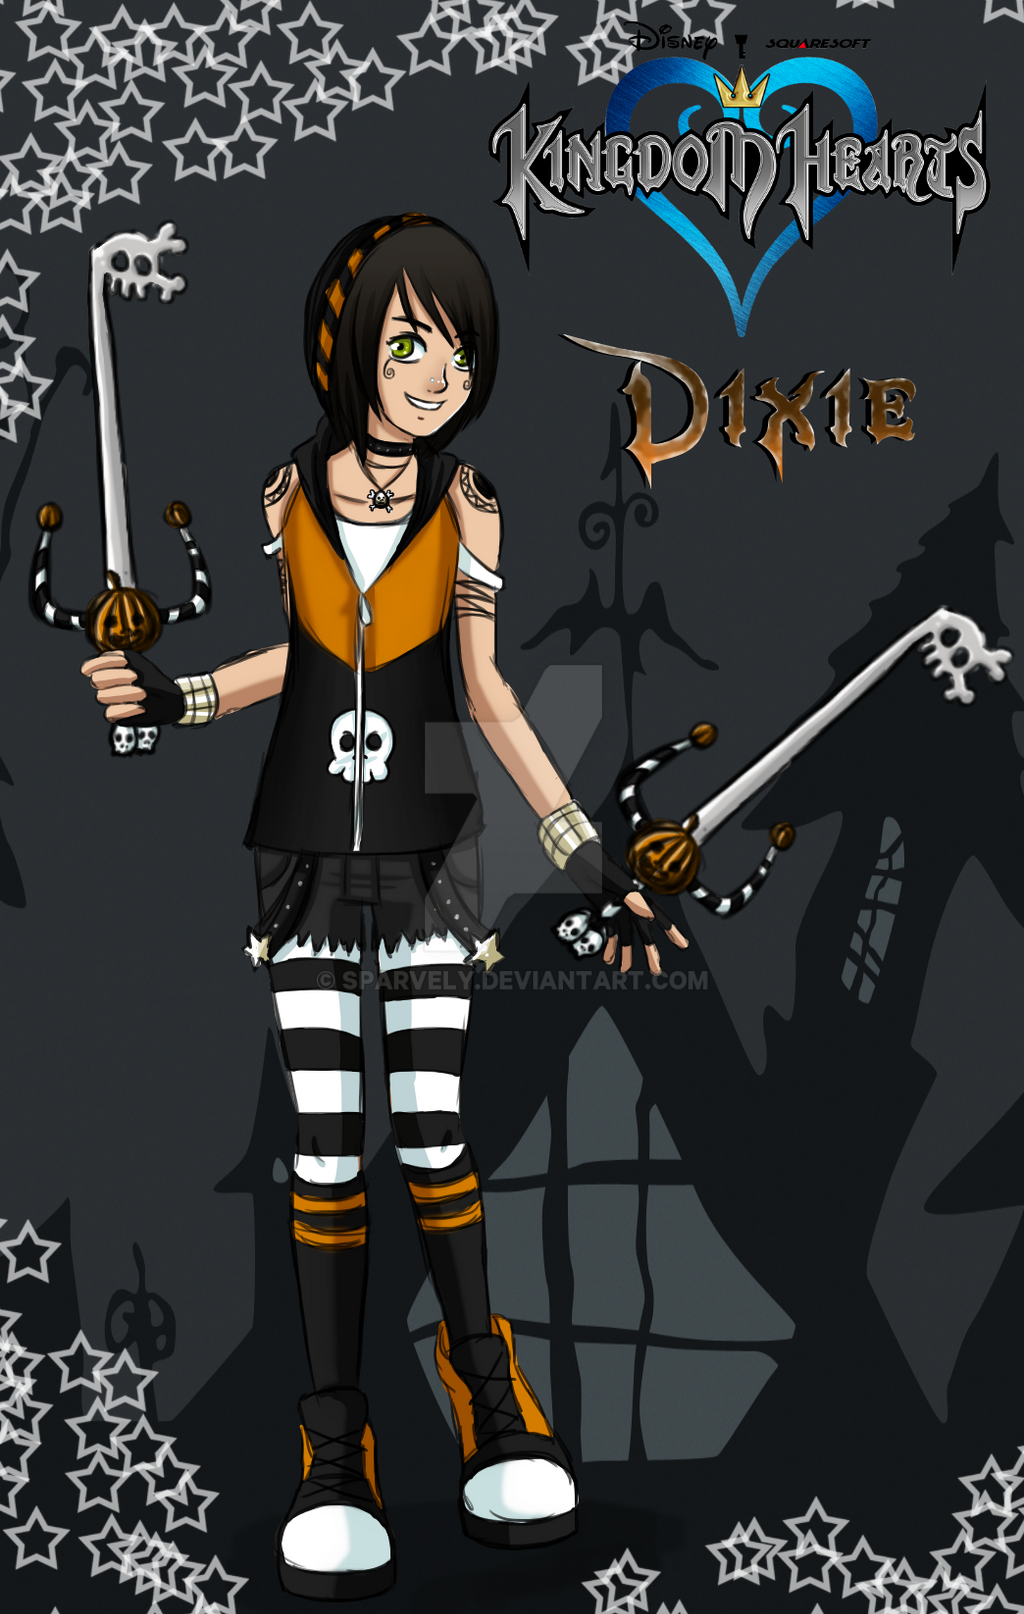 Kingdom Hearts OC - Dixie by Sparvely on DeviantArt